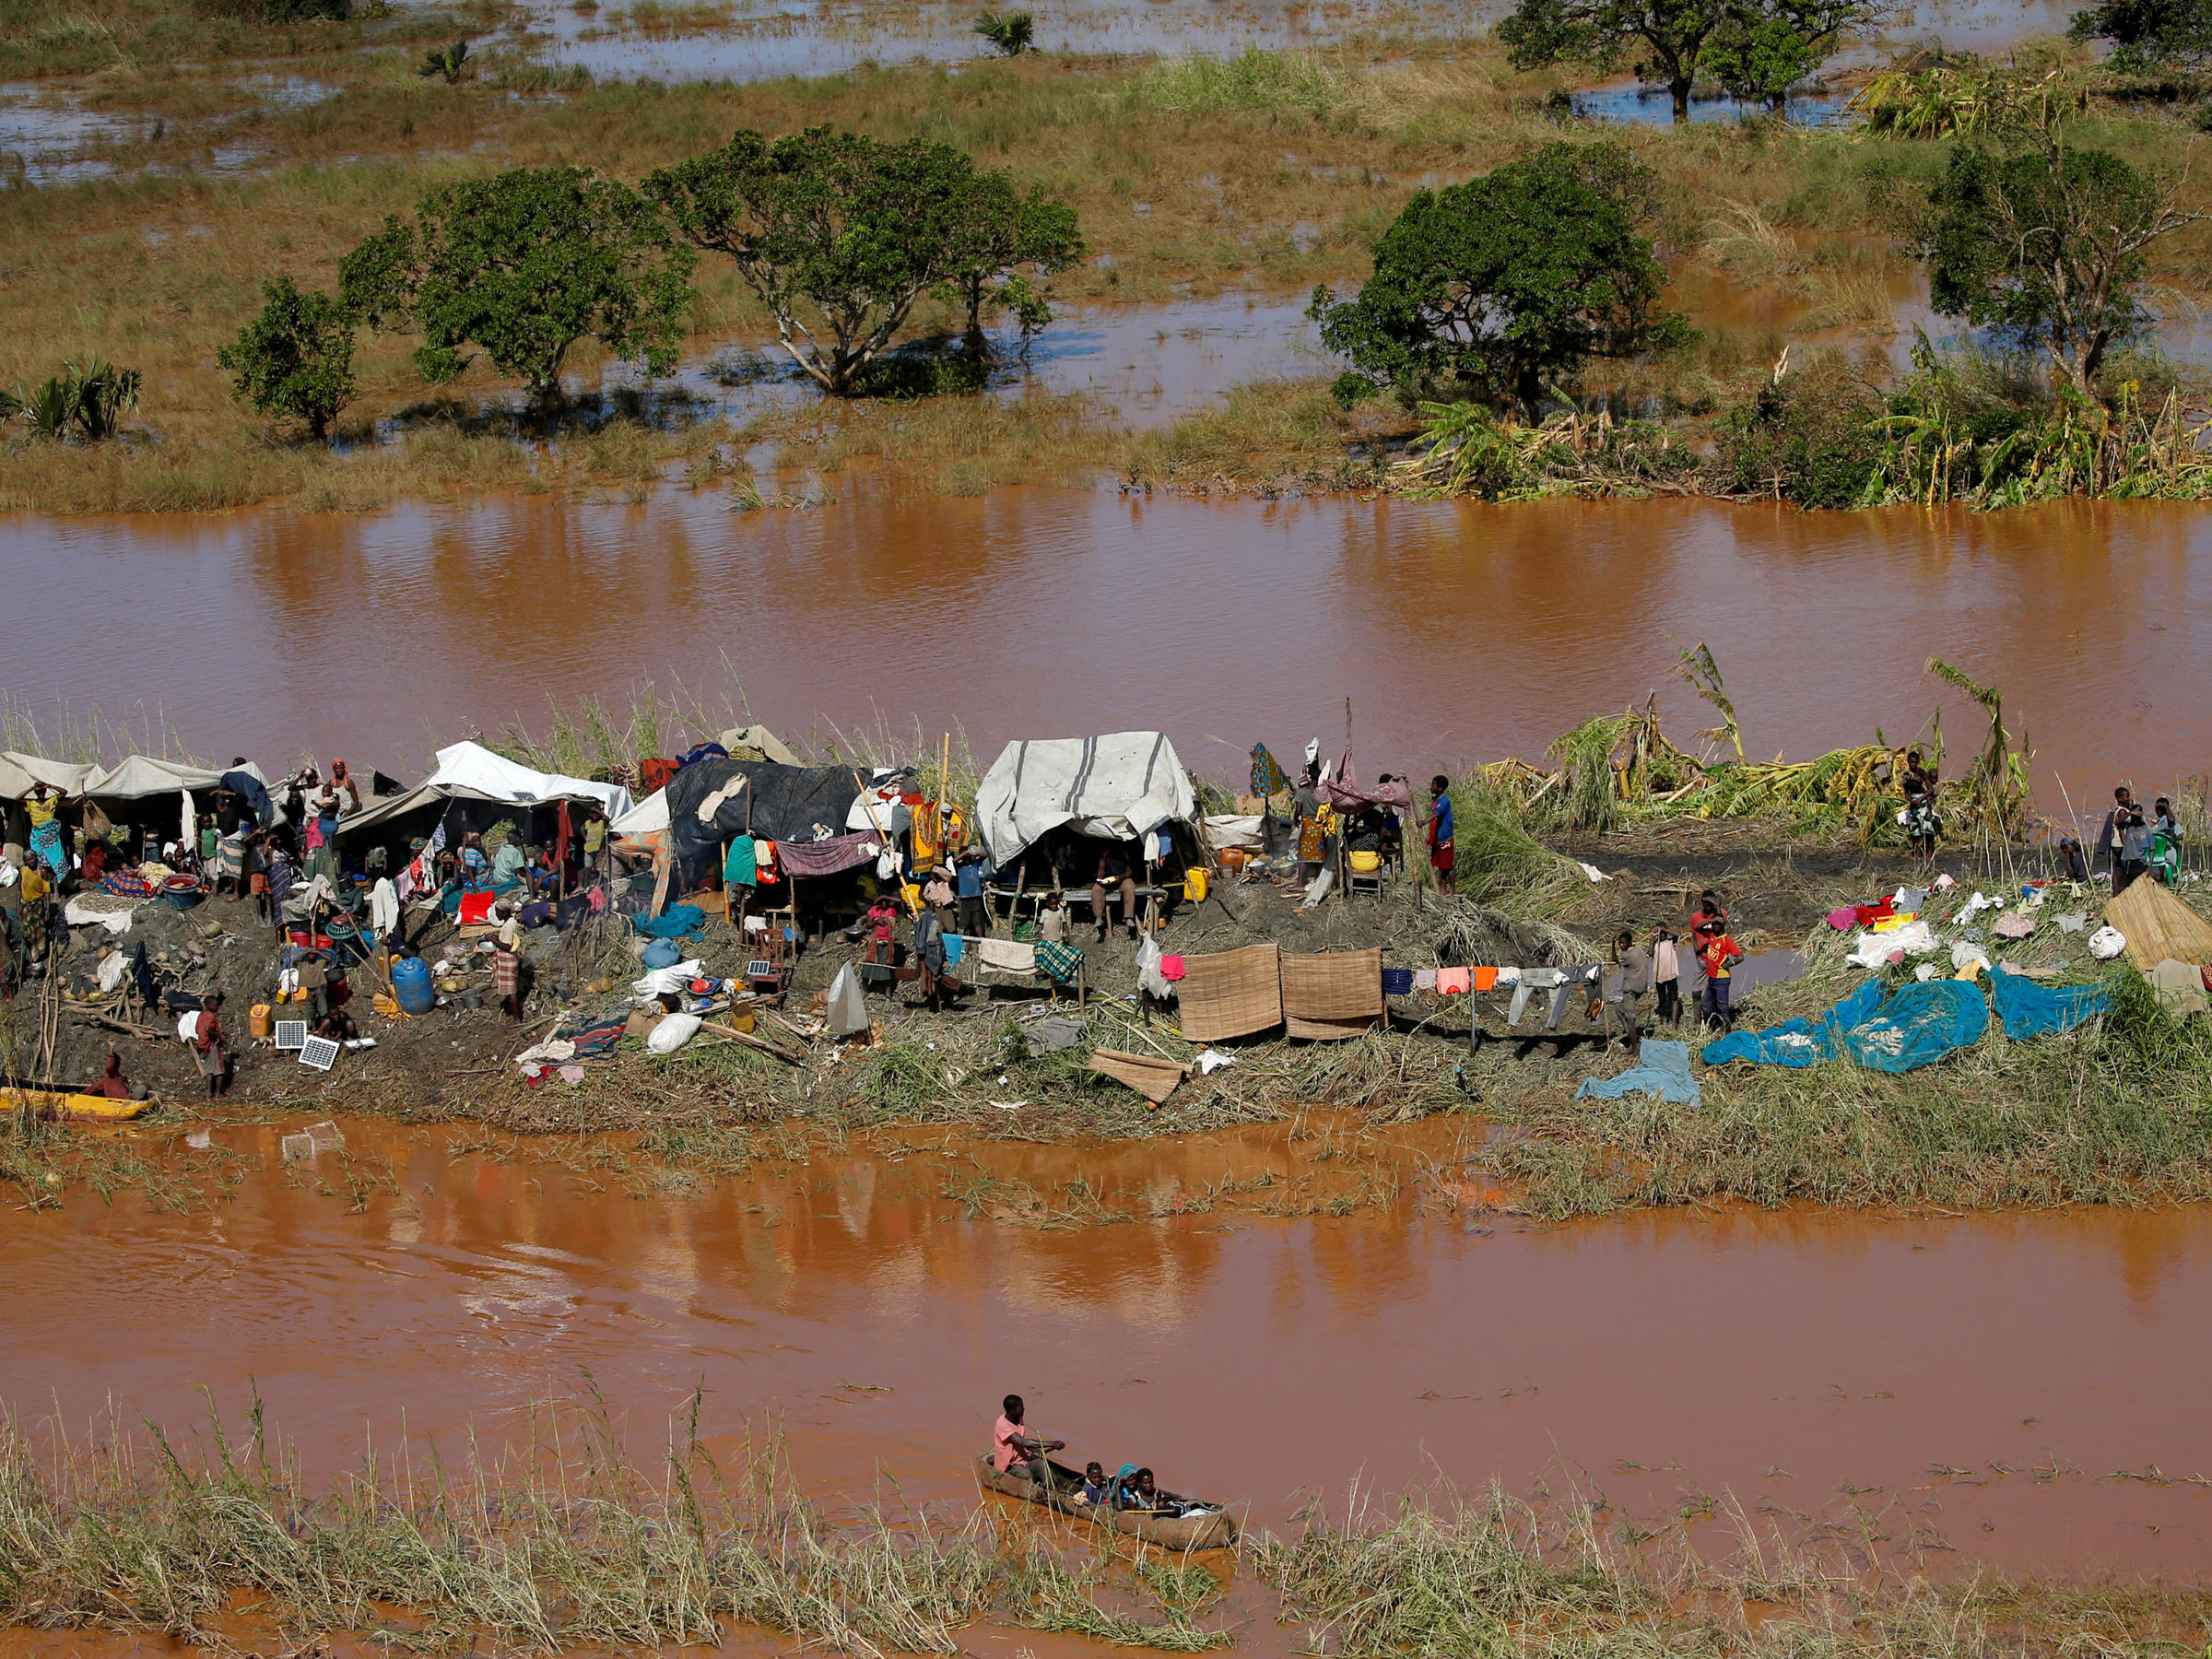 More than 15,000 still missing after huge cyclone hits Mozambique | Metro News